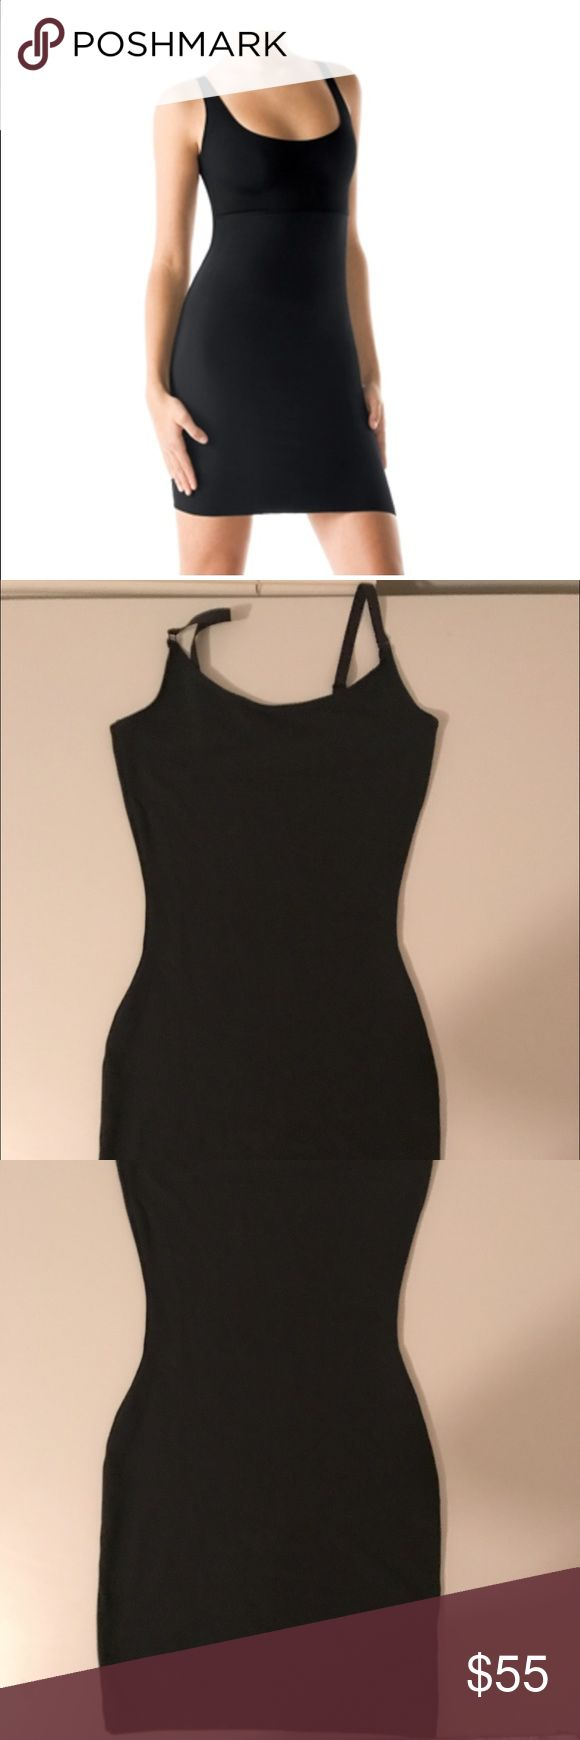 Spanx slip- like new! Black Spanx slip size small. Only worn once for a couple hours for an event. SPANX Intimates & Sleepwear Shapewear